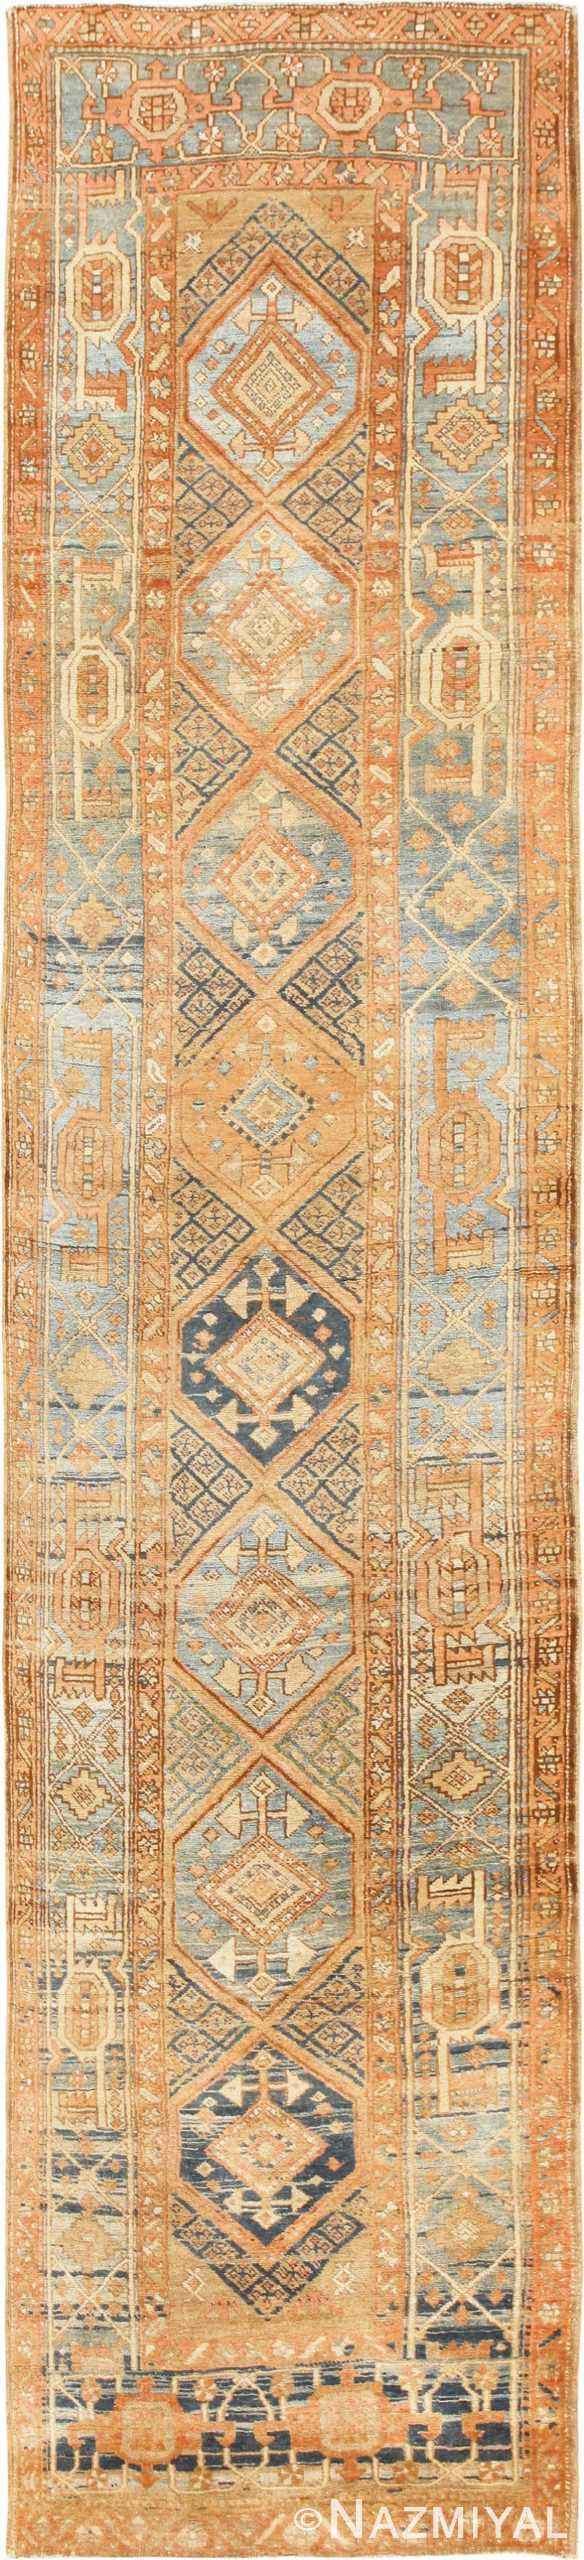 Tribal Antique Persian Heriz Serapi Runner Rug 48994 Nazmiyal